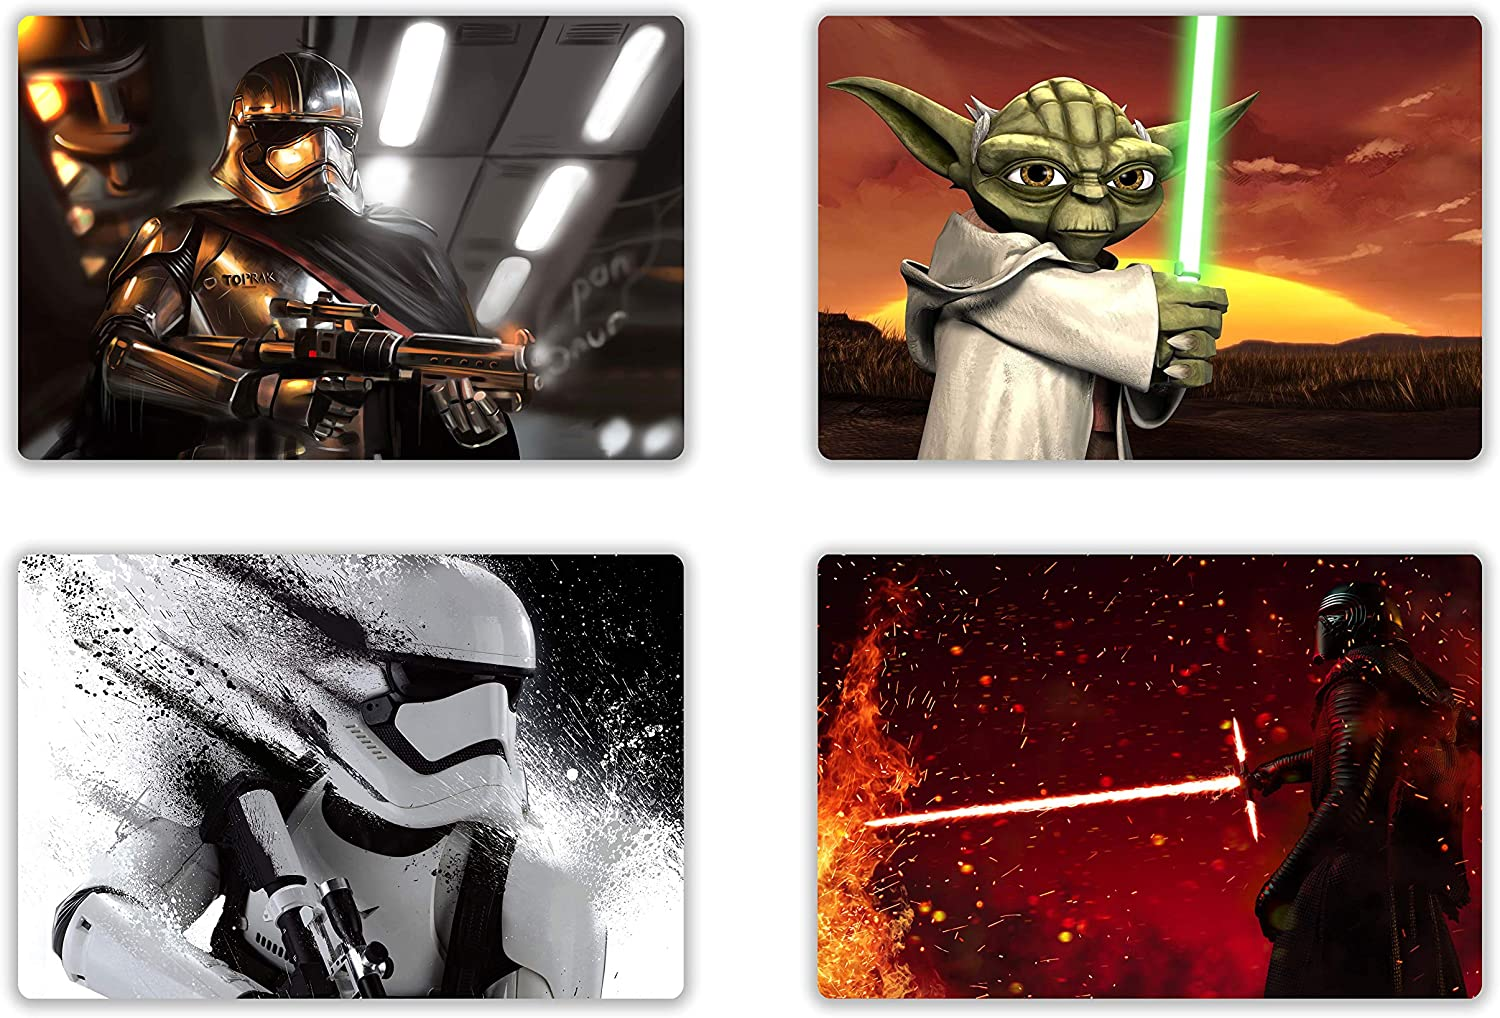 4PCS St_ar Wars Black Series Placemats - Kid Placemats ,Da_rth Va_der K_ylo Ren Y_oda Placemats for Dining Table, Plastic Waterproof Heat Insulation Table Place Mats for Kitchen Table